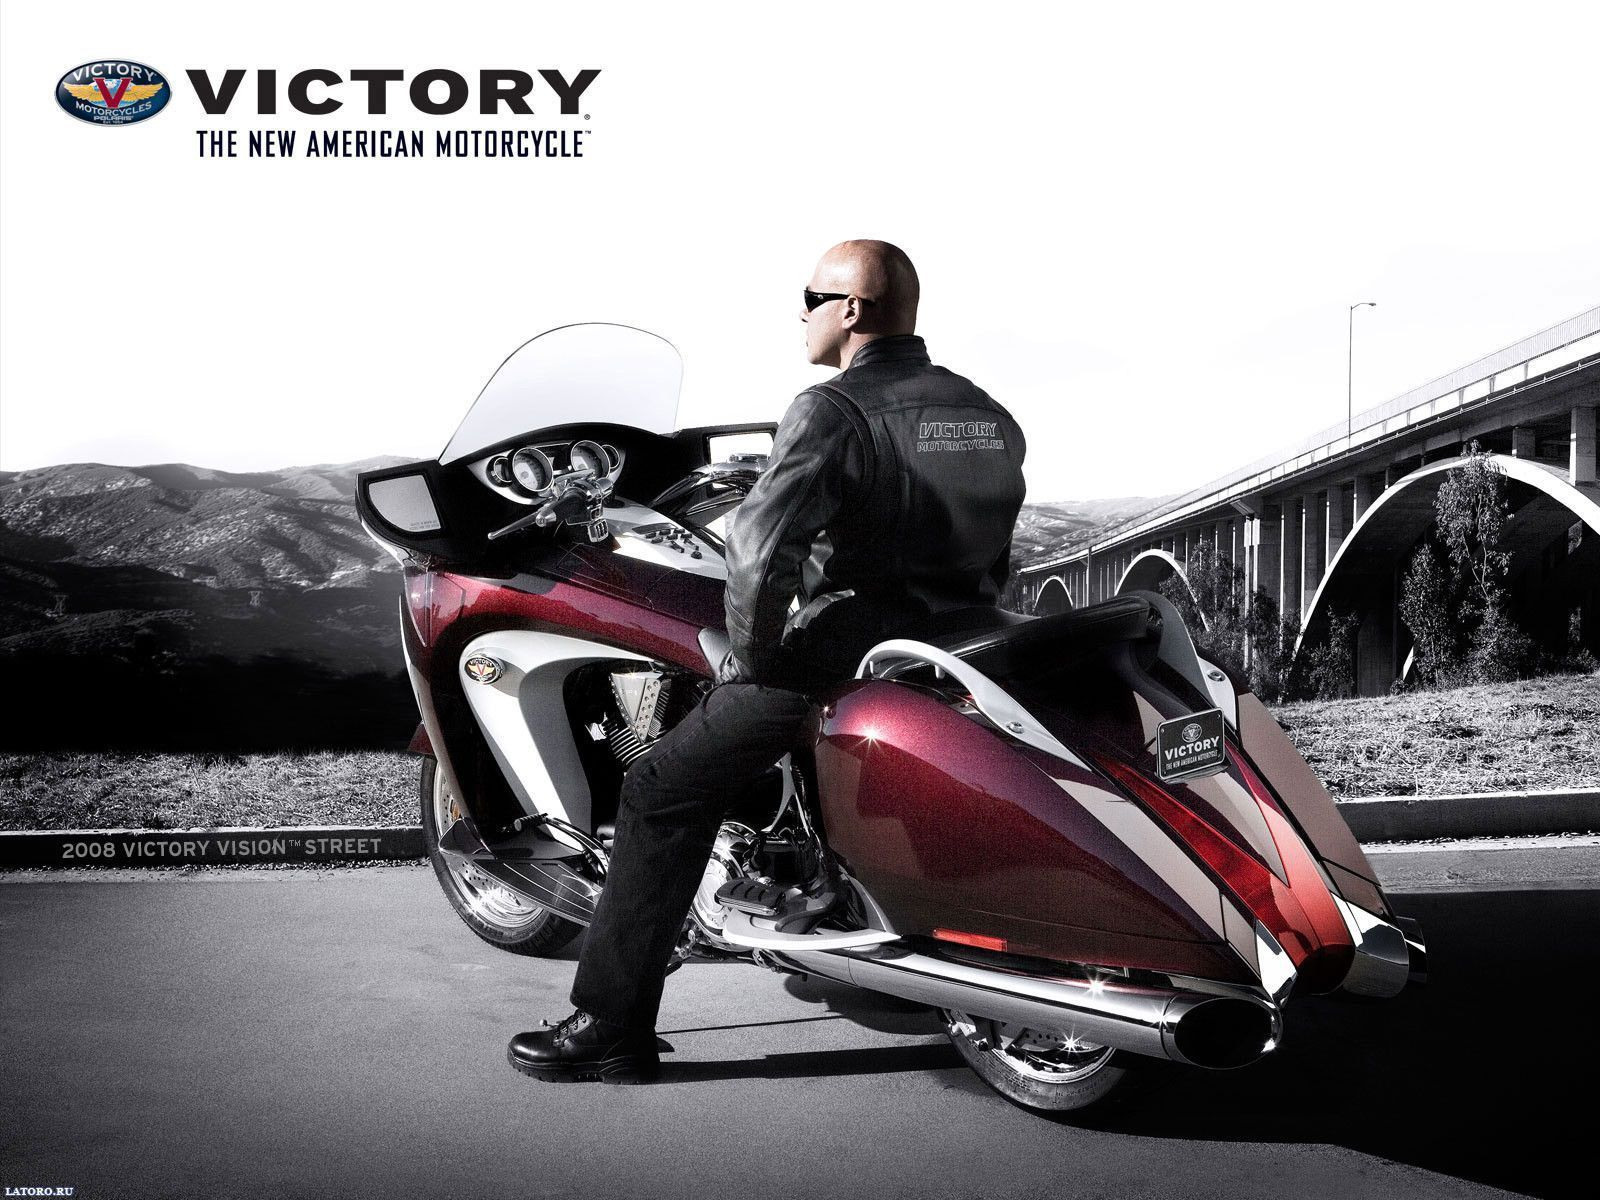 Victory Motorcycle 3d Wallpapers Hd Wallpapers Spy Victory Motorcycles Victory Motorcycle Motorcycle